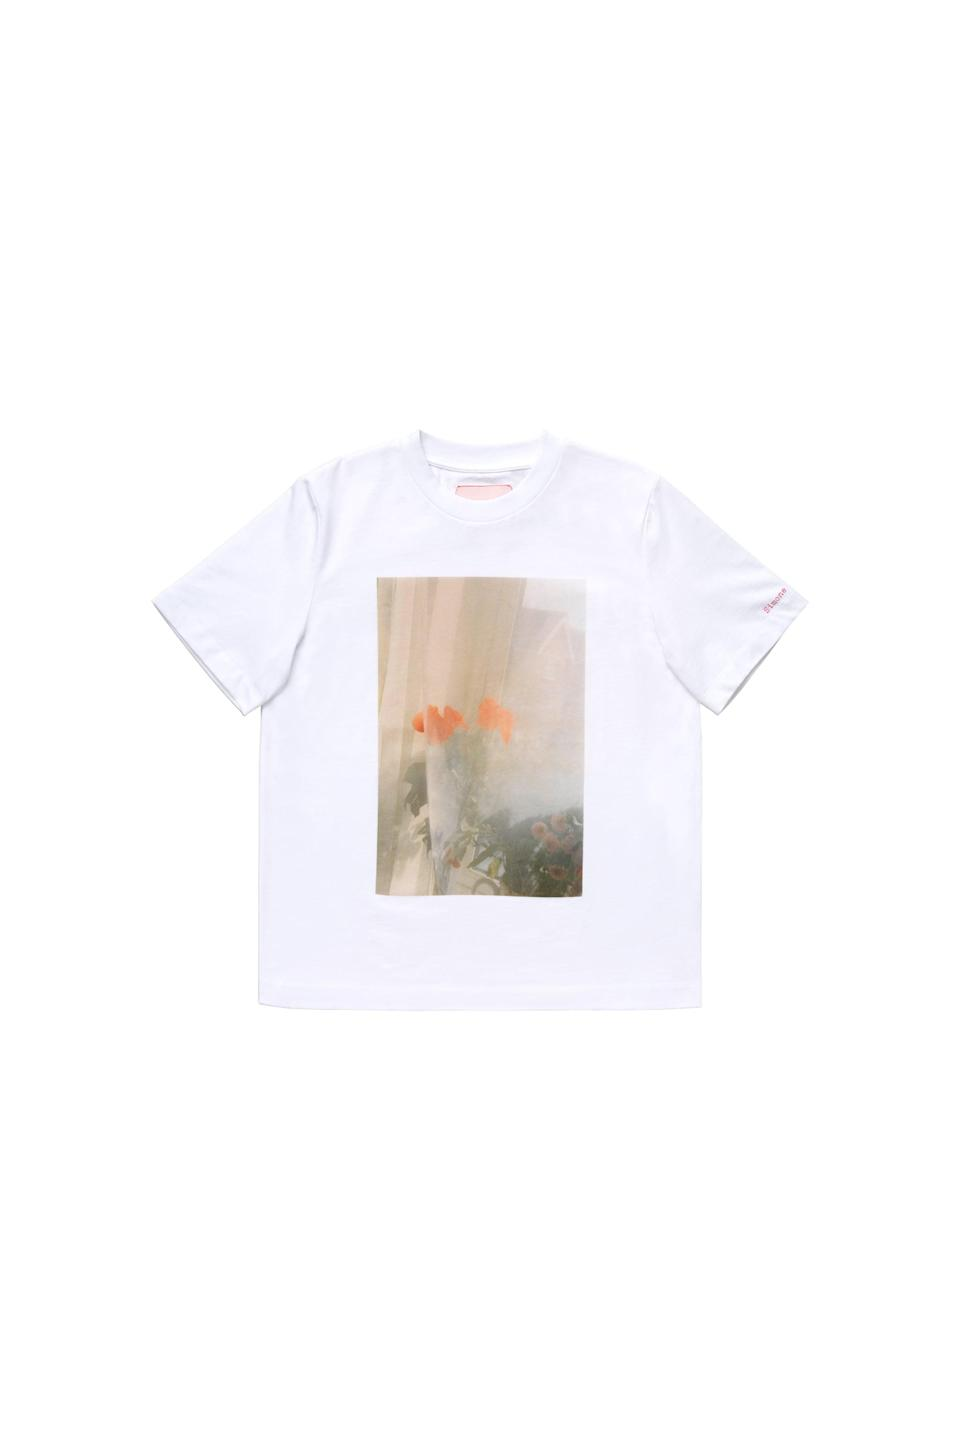 <p><span>Simone Rocha x H&amp;M Photo-Print T-Shirt</span> ($35).</p>